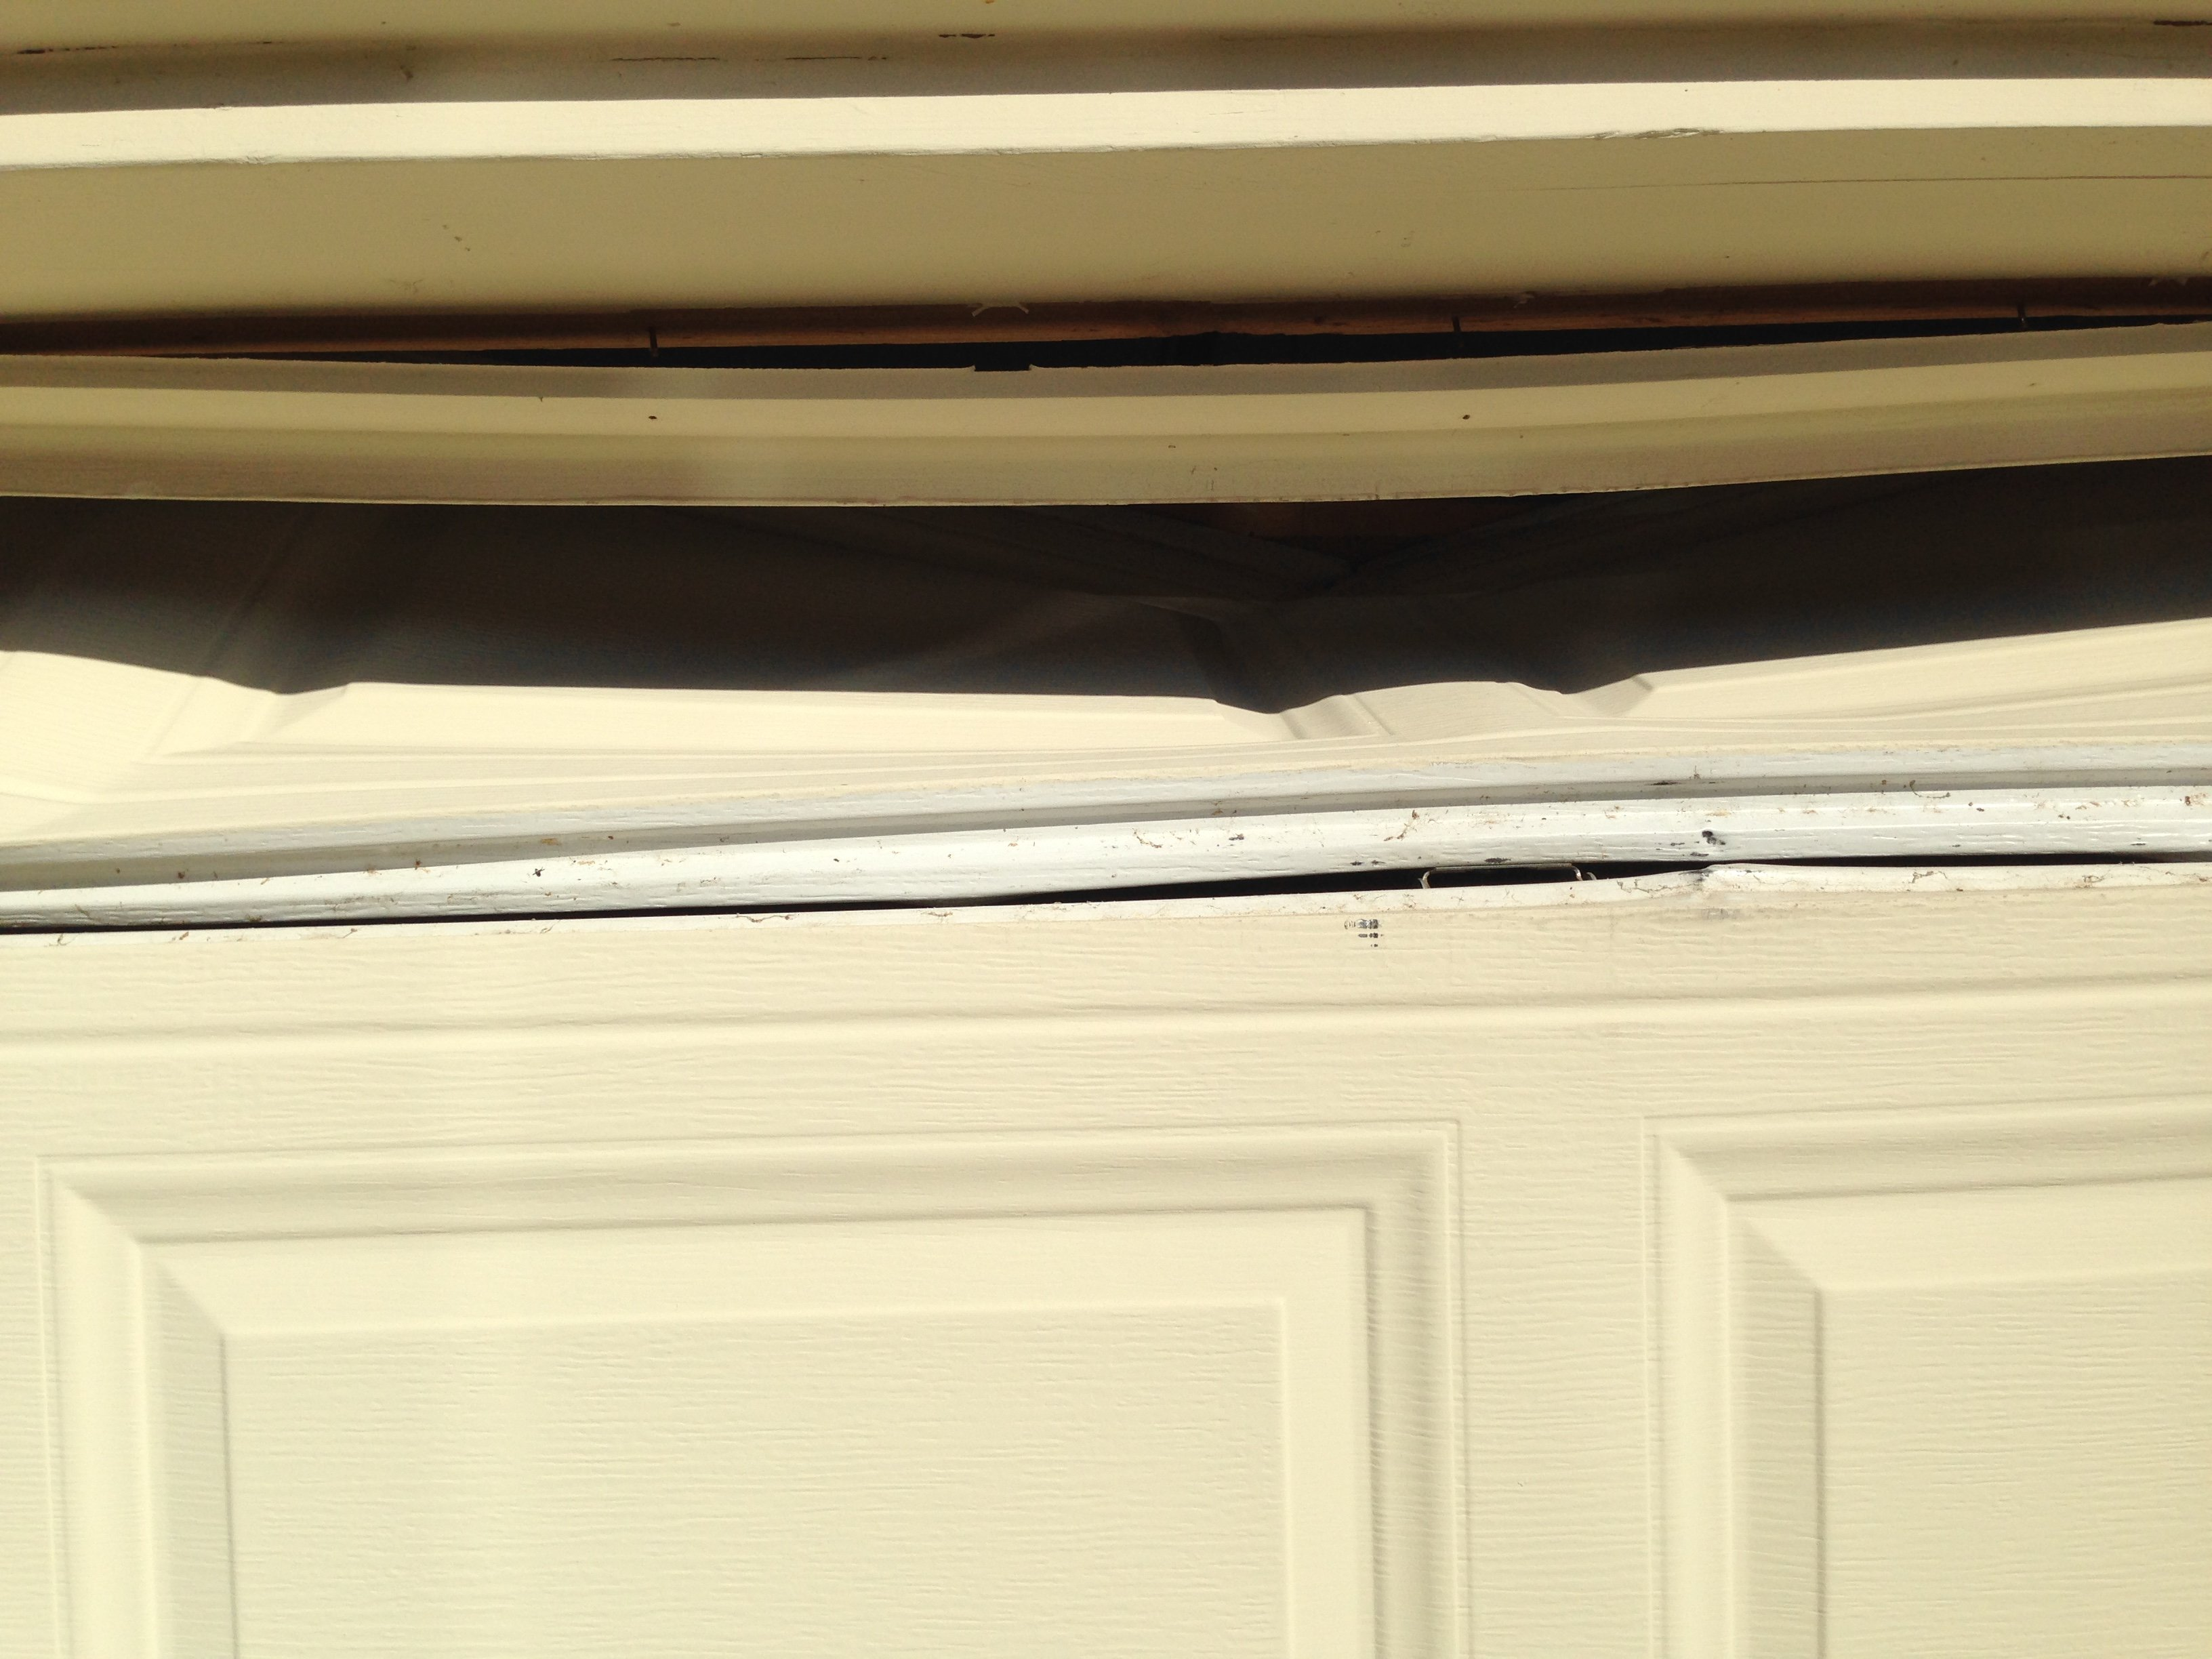 Hit by car backing out before door finished opening. Needs new section, support strut, and trim repair.